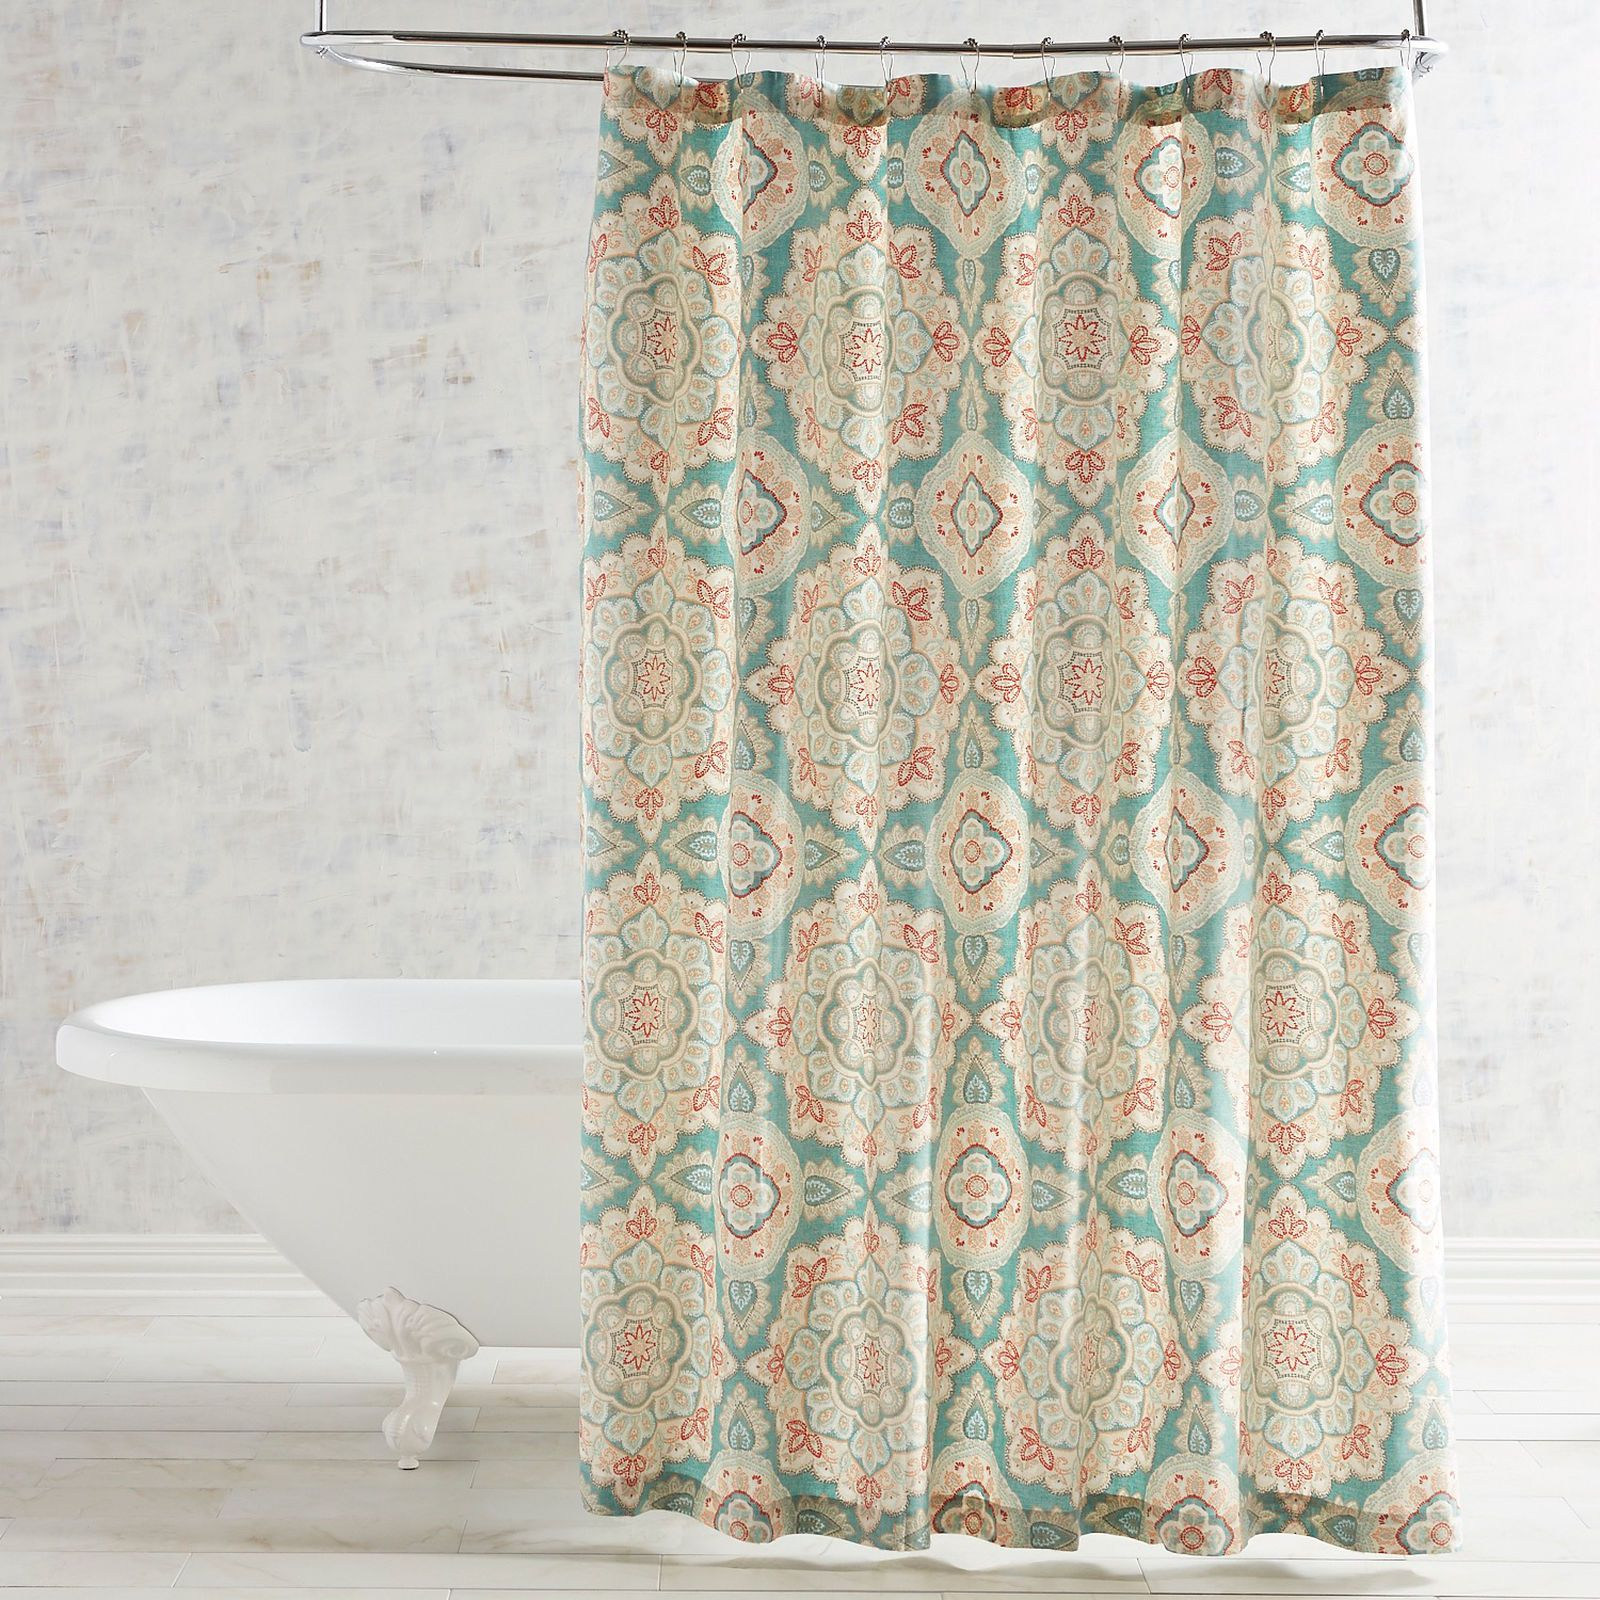 Null Bathroom Curtain Set Curtains Shower